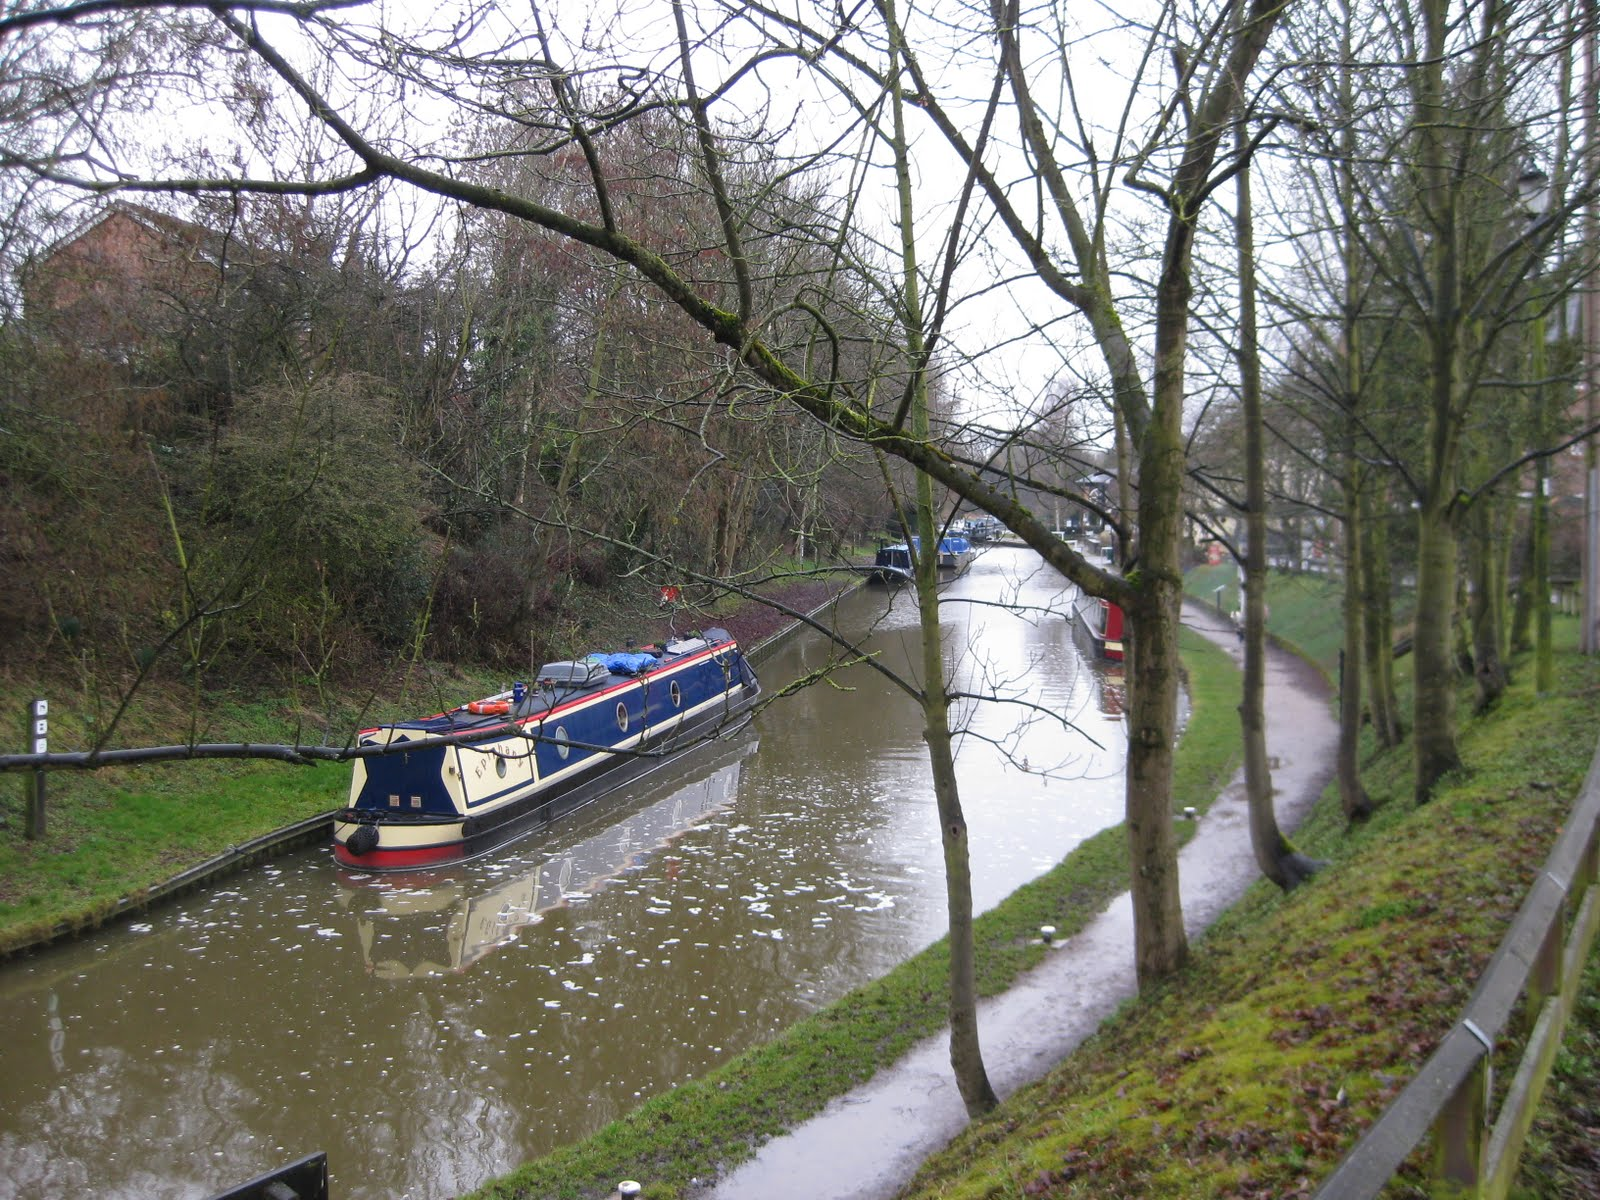 Next trip on a canalboat?